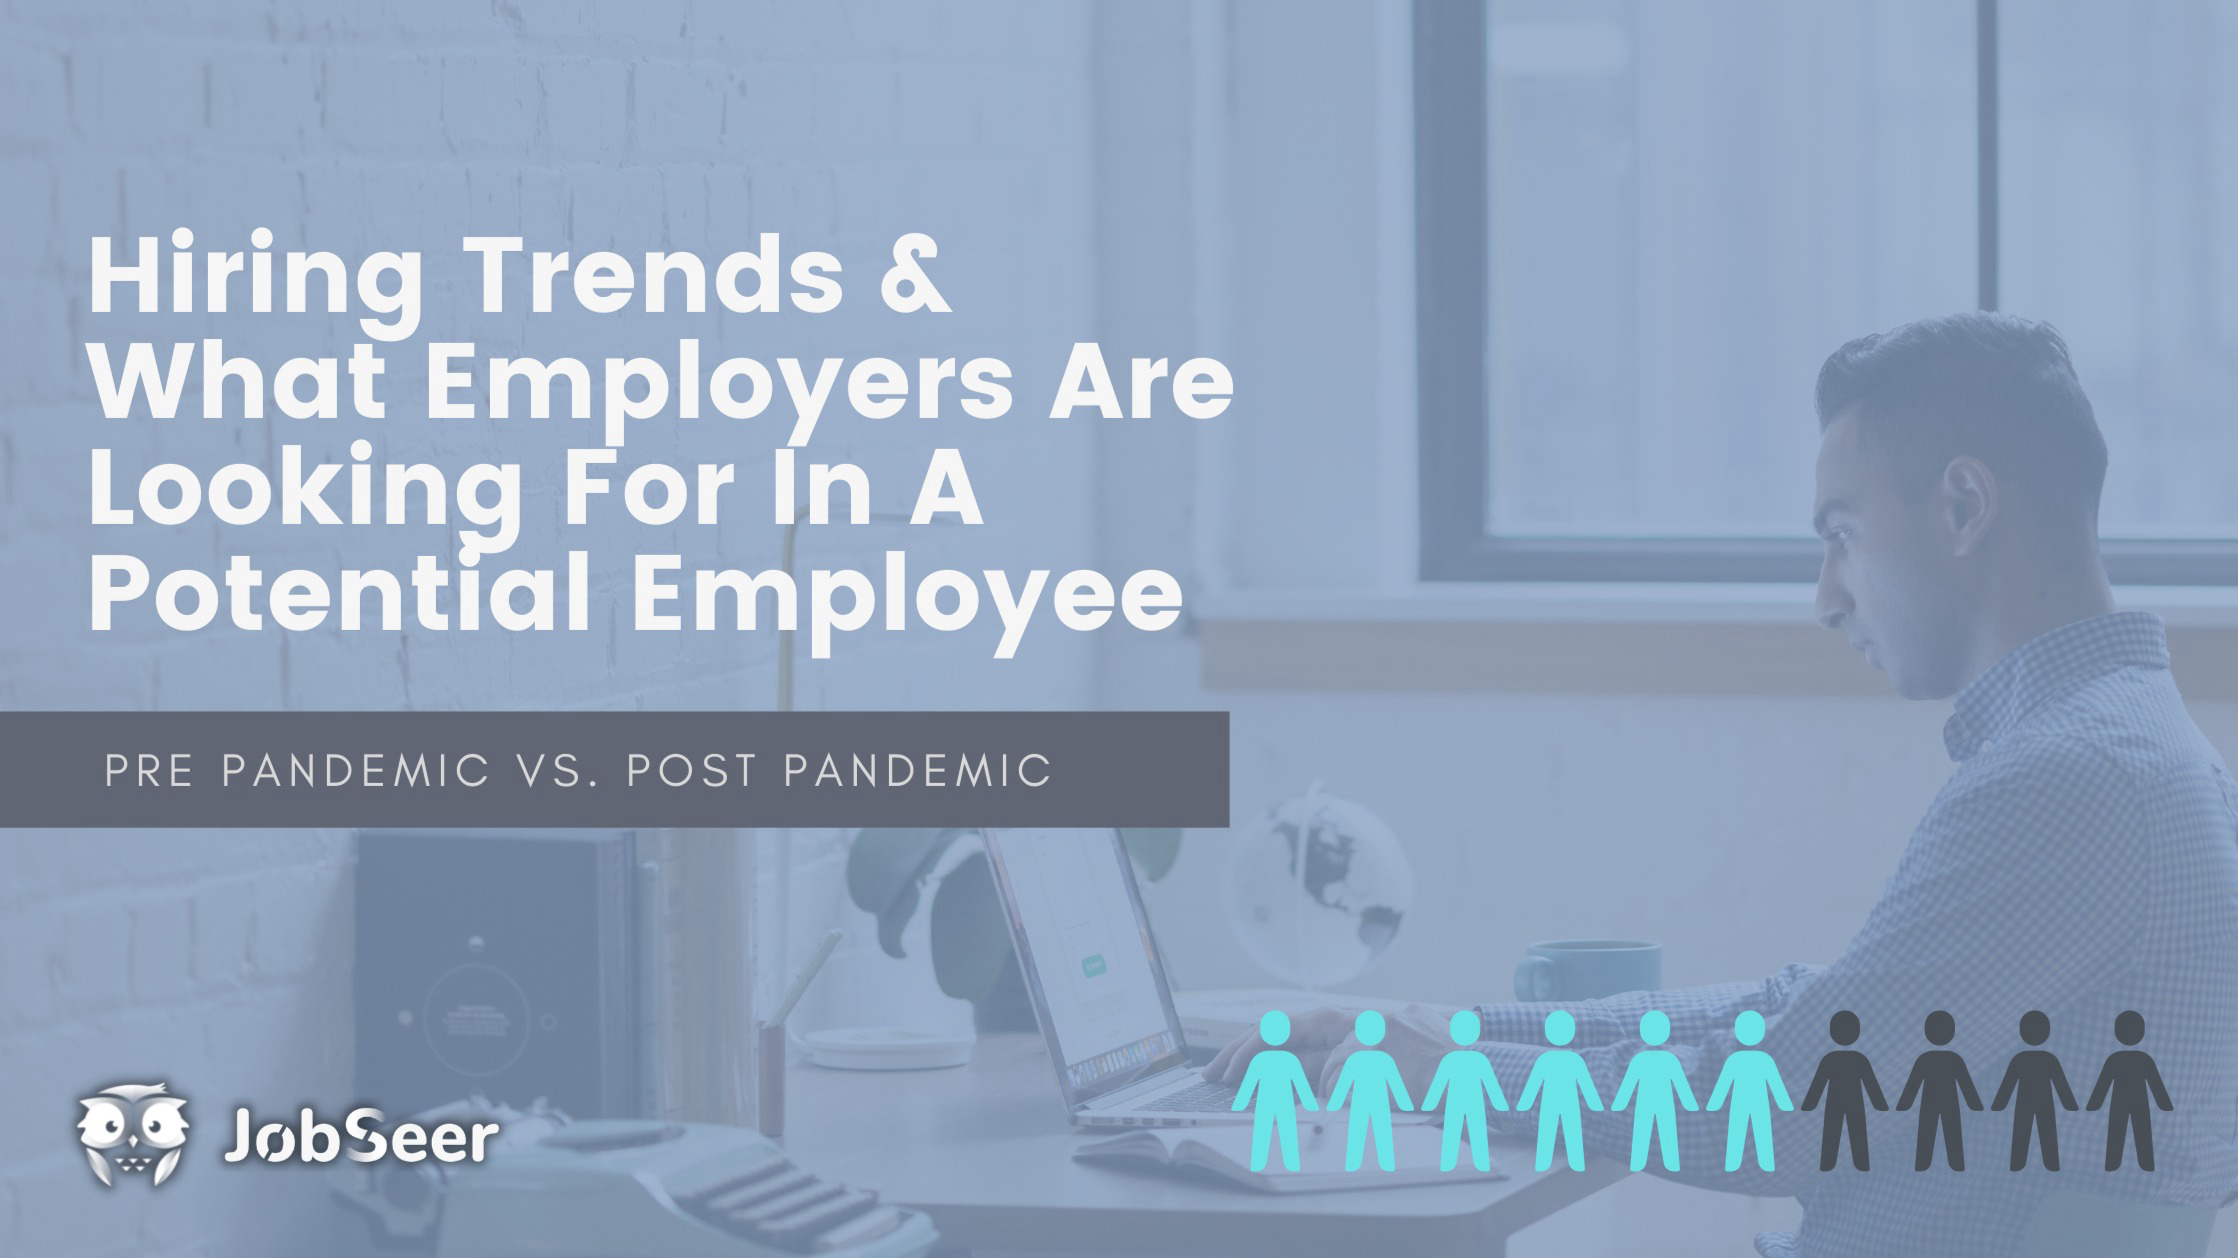 post-pandemic-hiring-trends-what-employers-are-looking-for-in-a-potential-employee